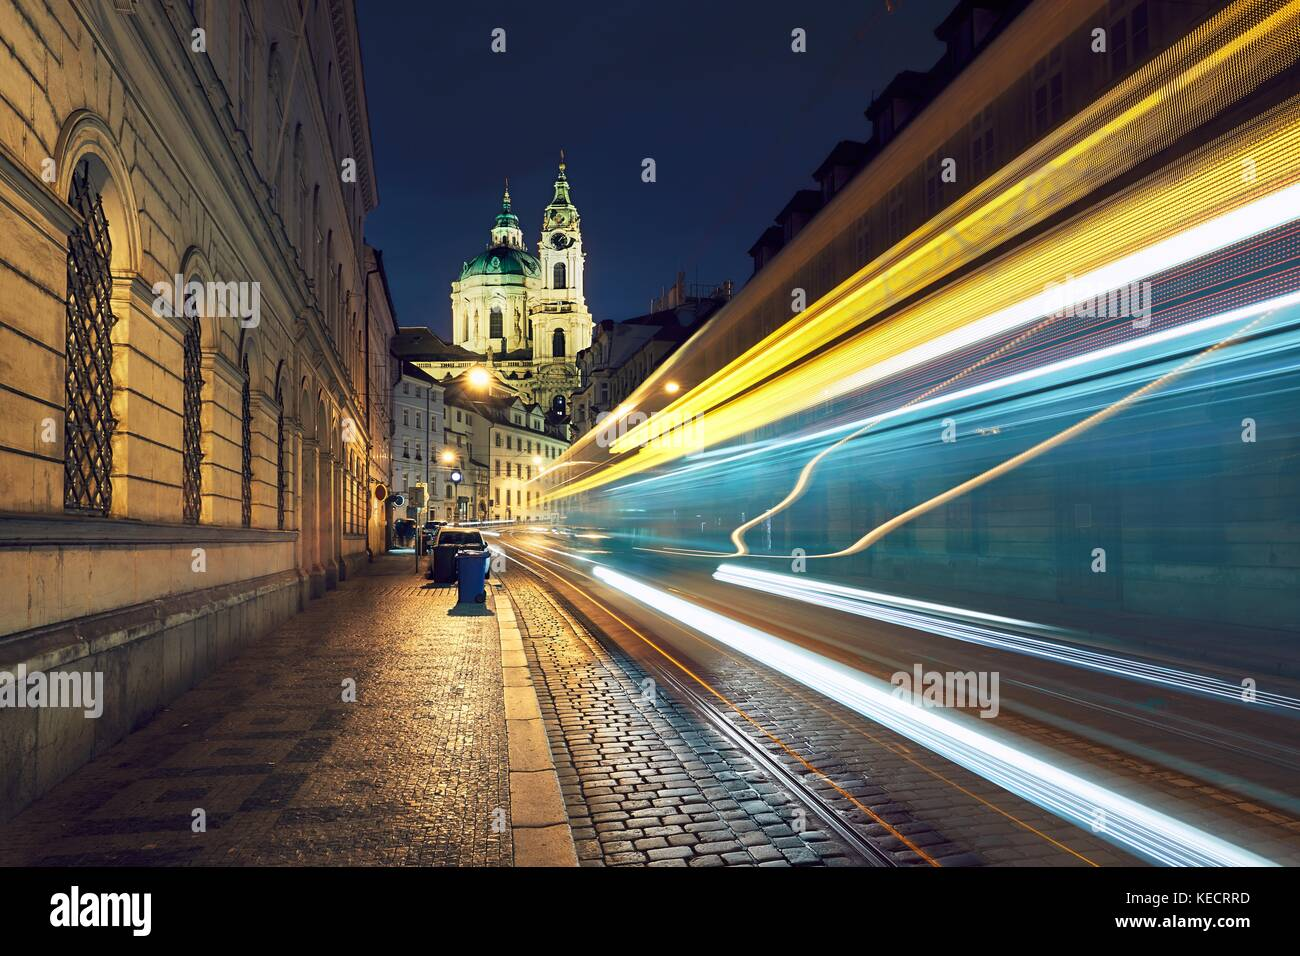 Night traffic on the ancient street near The Church of Saint Nicholas in Prague, Czech Republic. - Stock Image